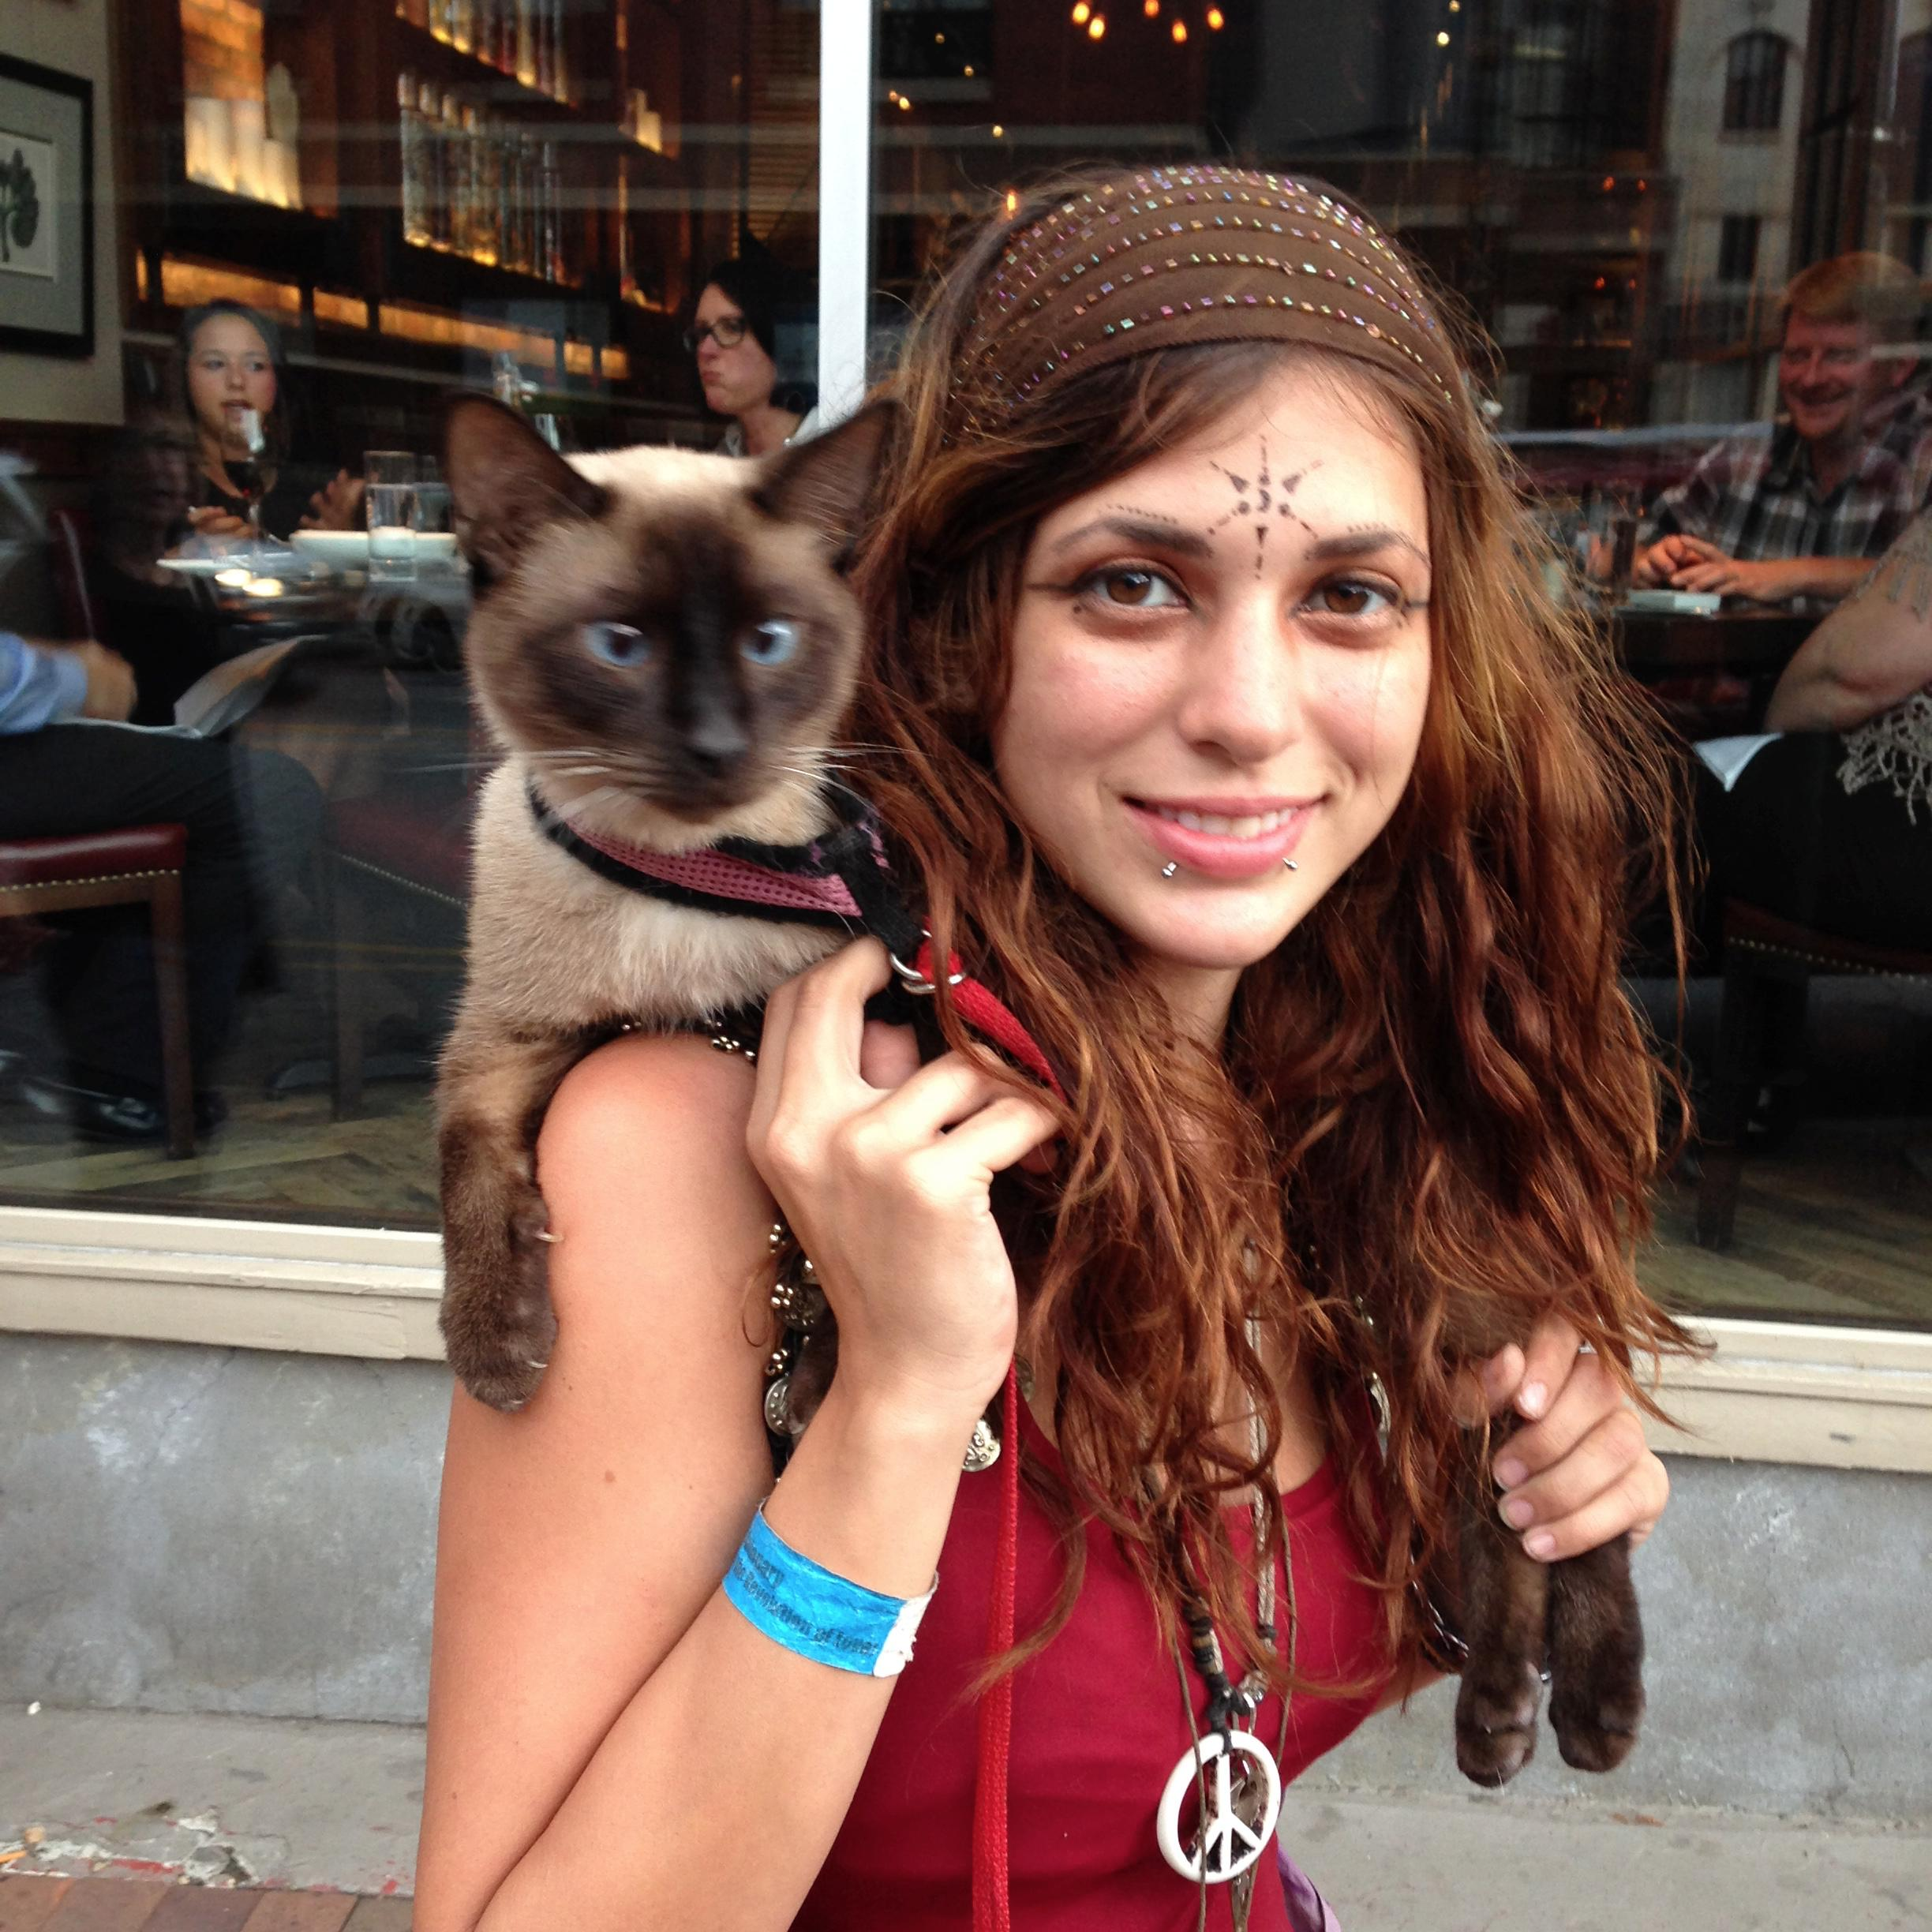 Random girl with a cat on her shoulder